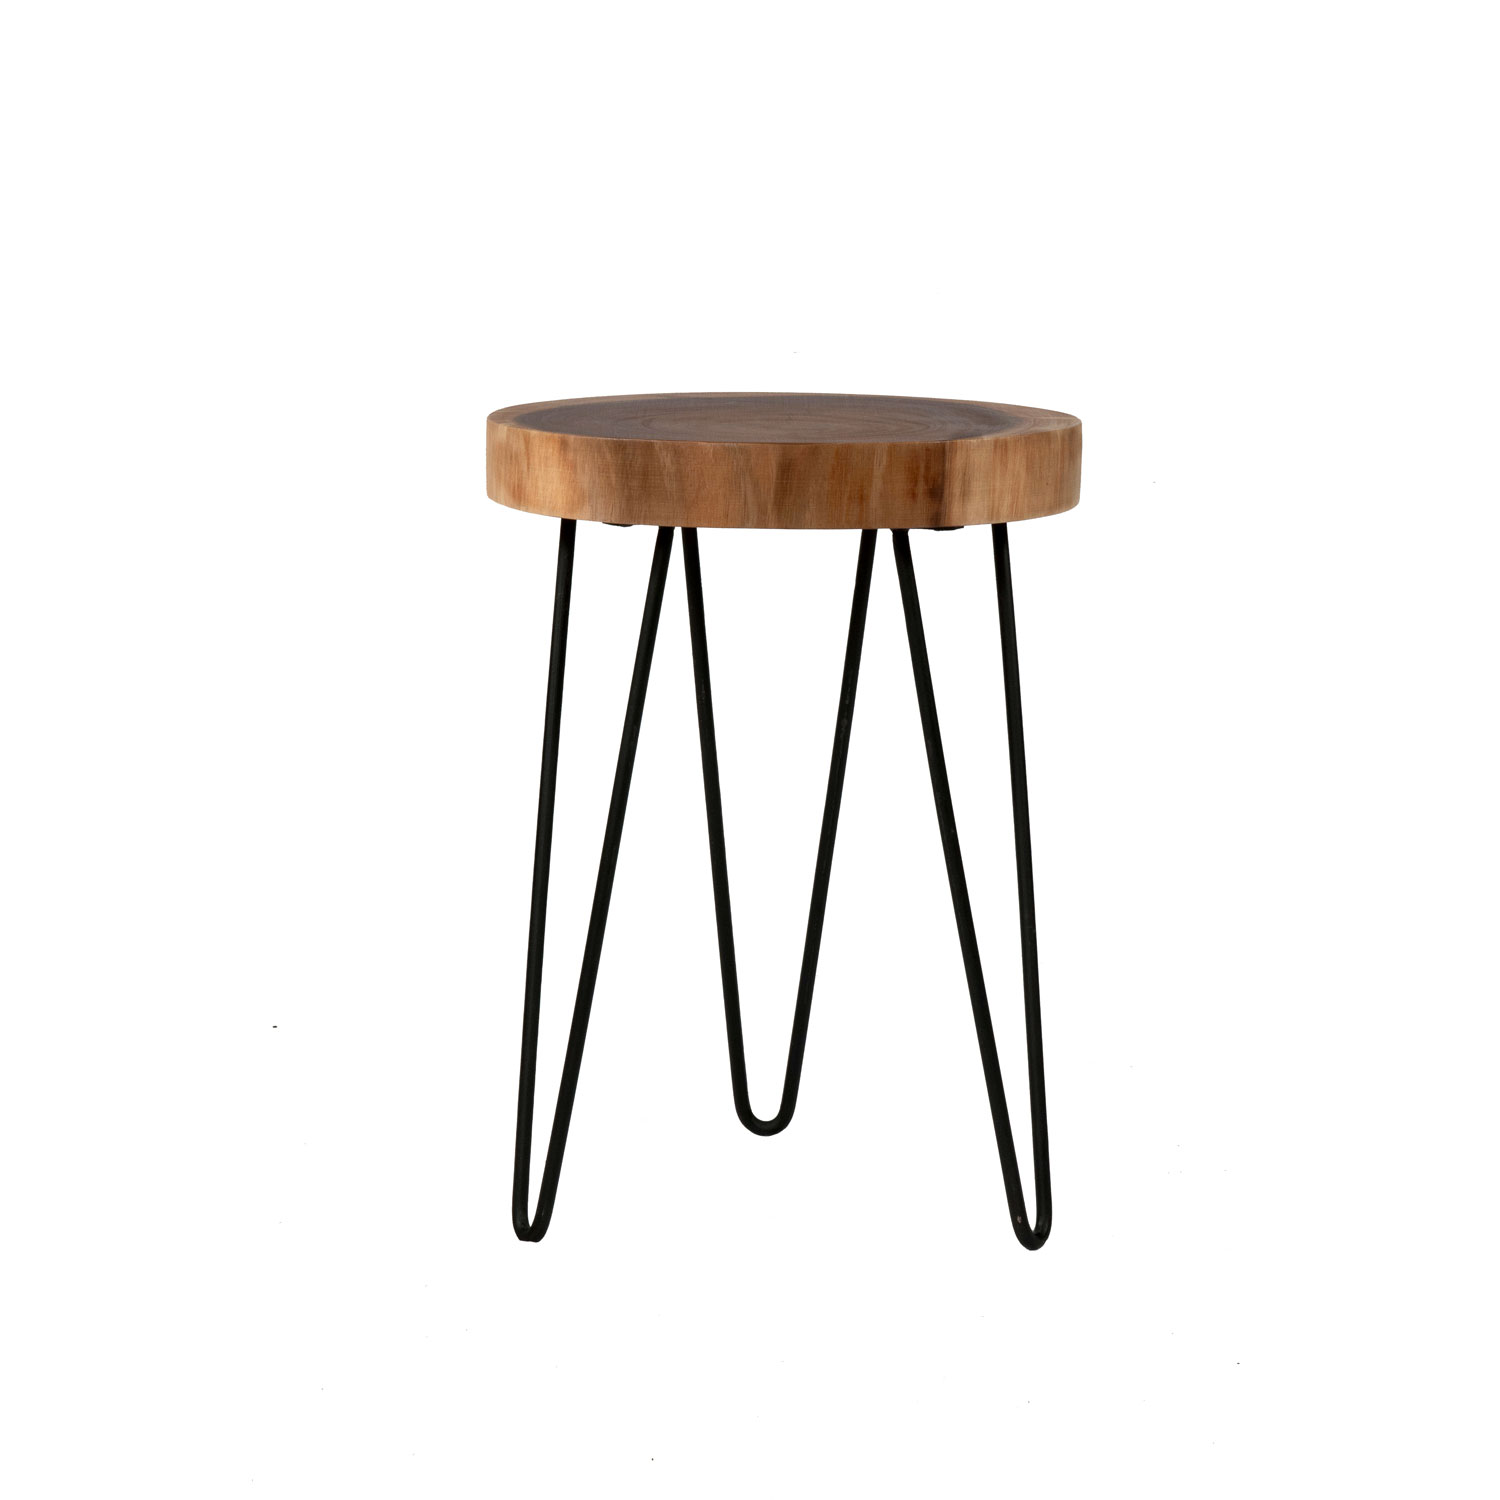 east main laredo brown teakwood round accent table grey hover zoom triangle nightstand laminate door strip drum throne base tiffany leadlight lamps outdoor cooler applique runner